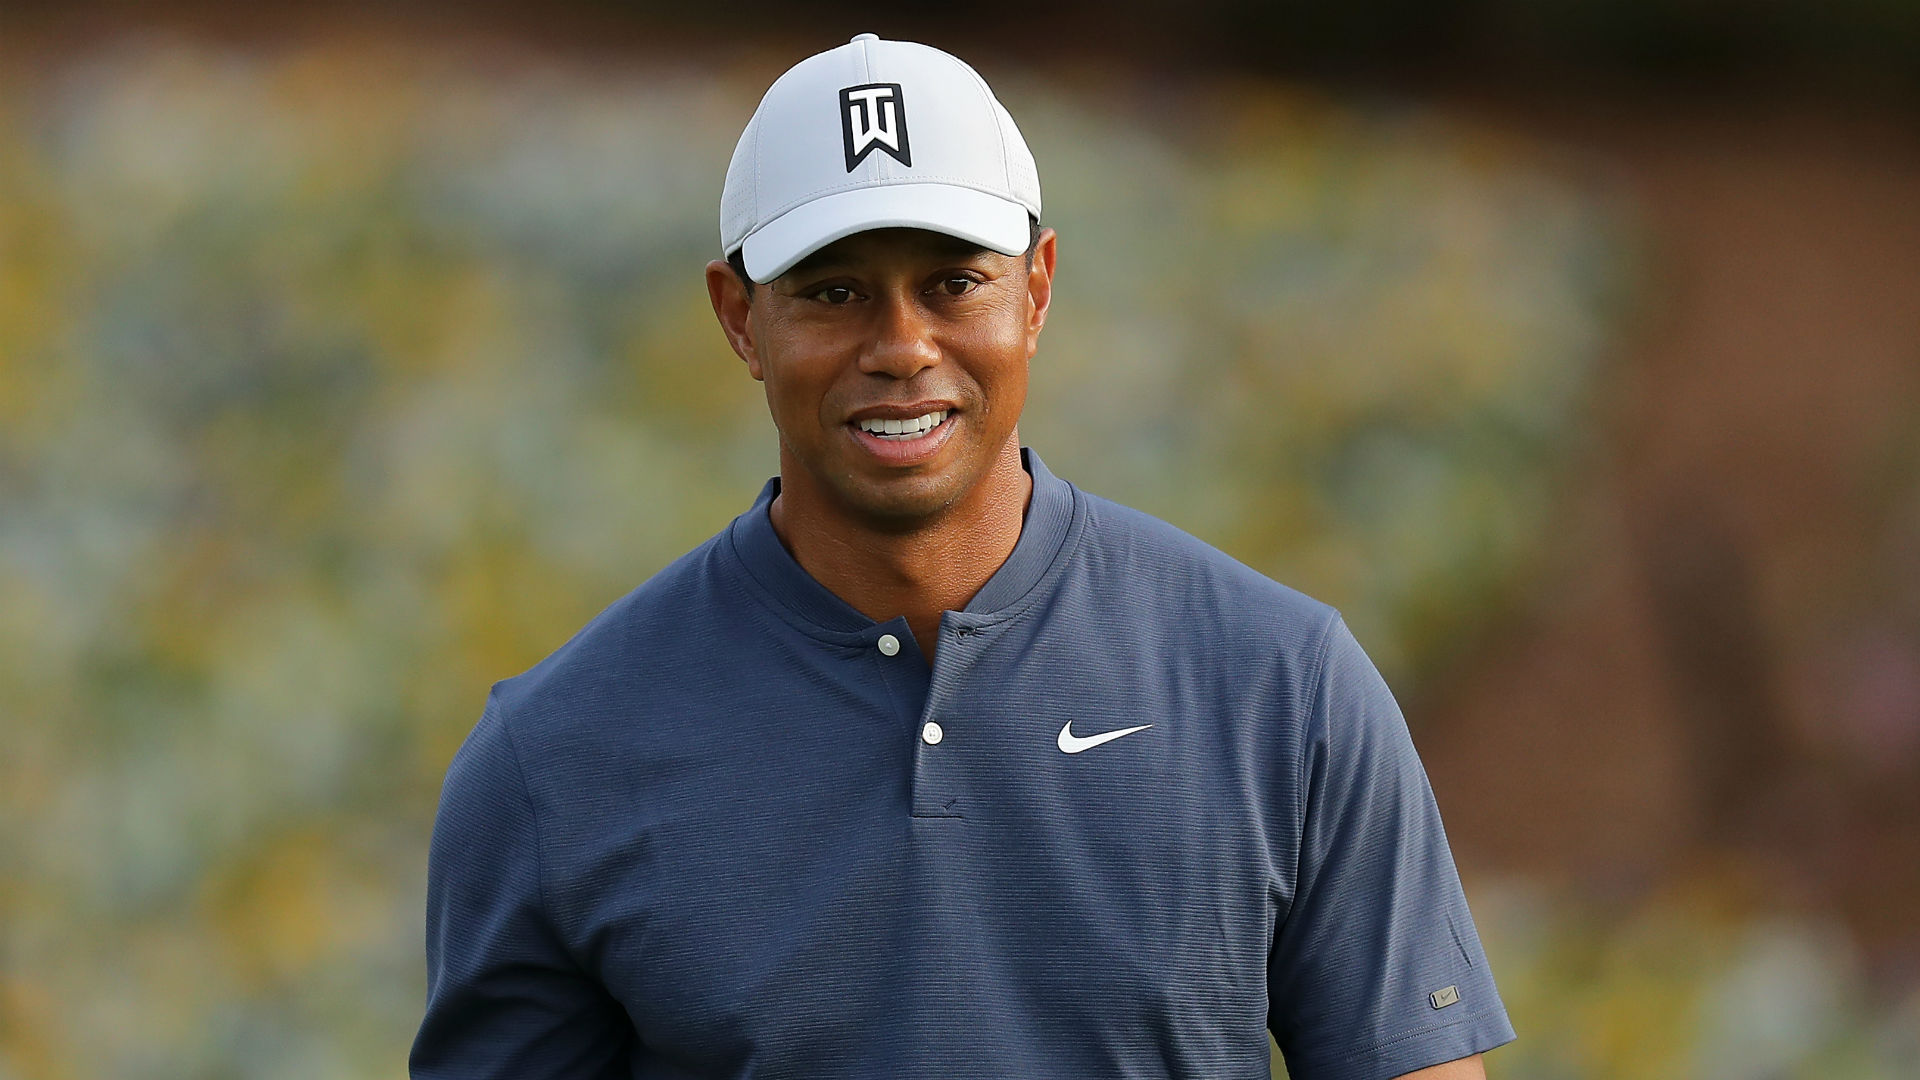 Tiger Woods' Schedule: Will He Play at THE PLAYERS & Masters?